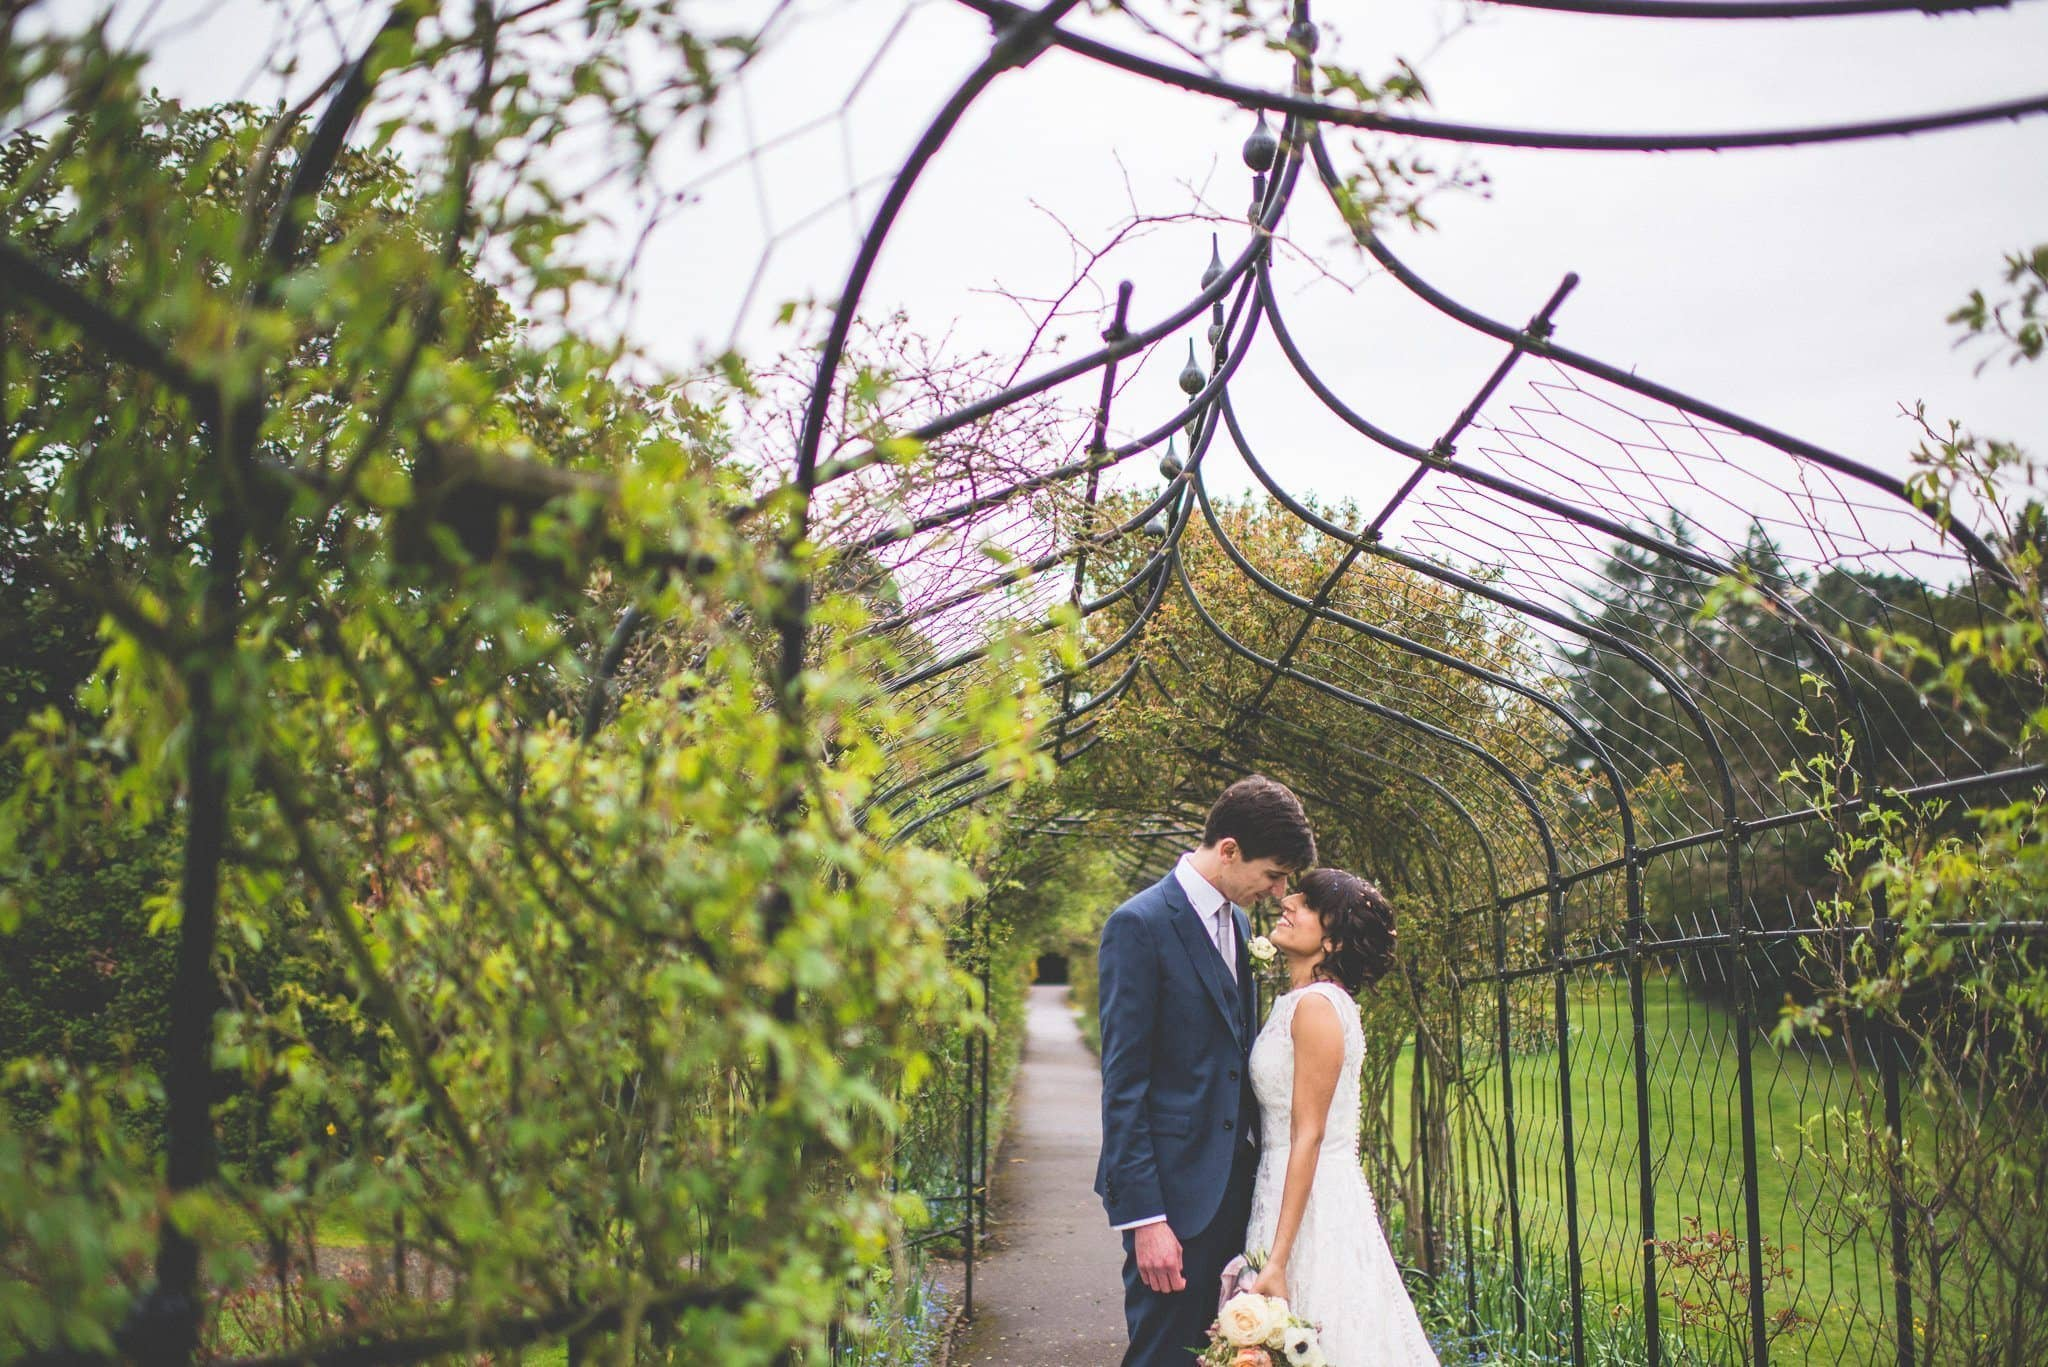 The couple stand with their foreheads touching, under an iron pergola with pale green foliage climbing up it